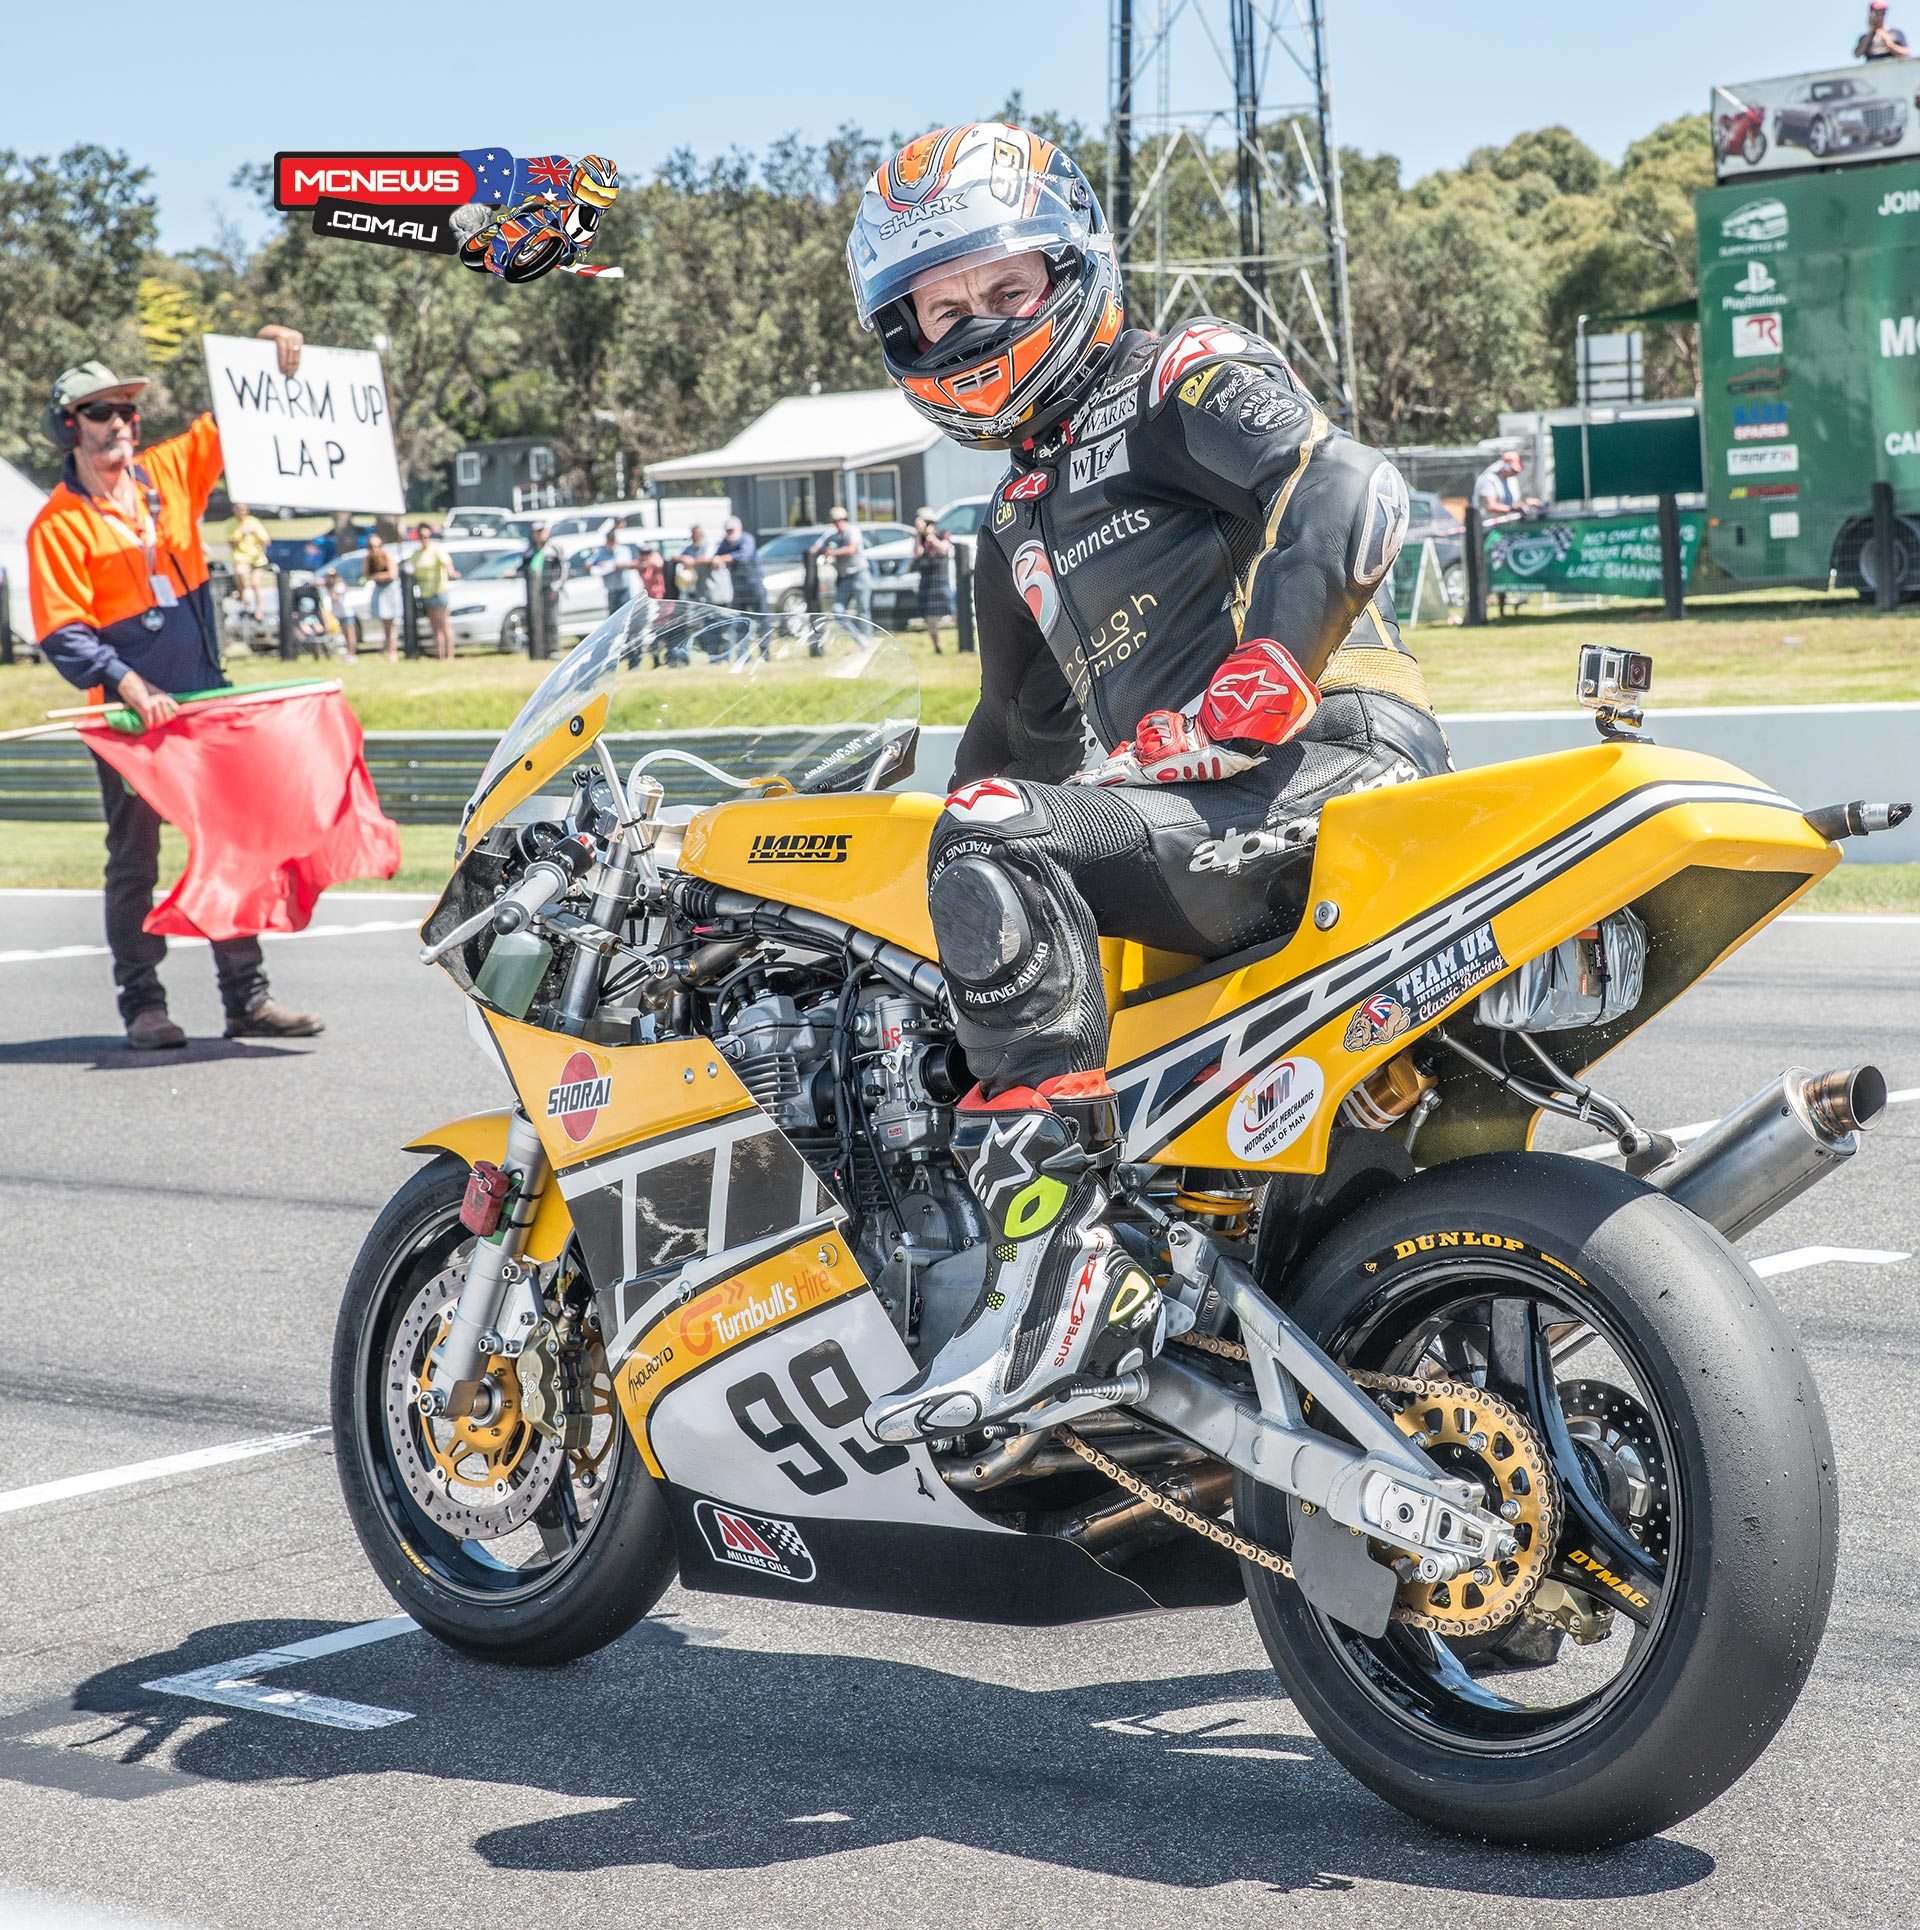 Jeremy McWilliams on the grid at the 2015 Island Classic